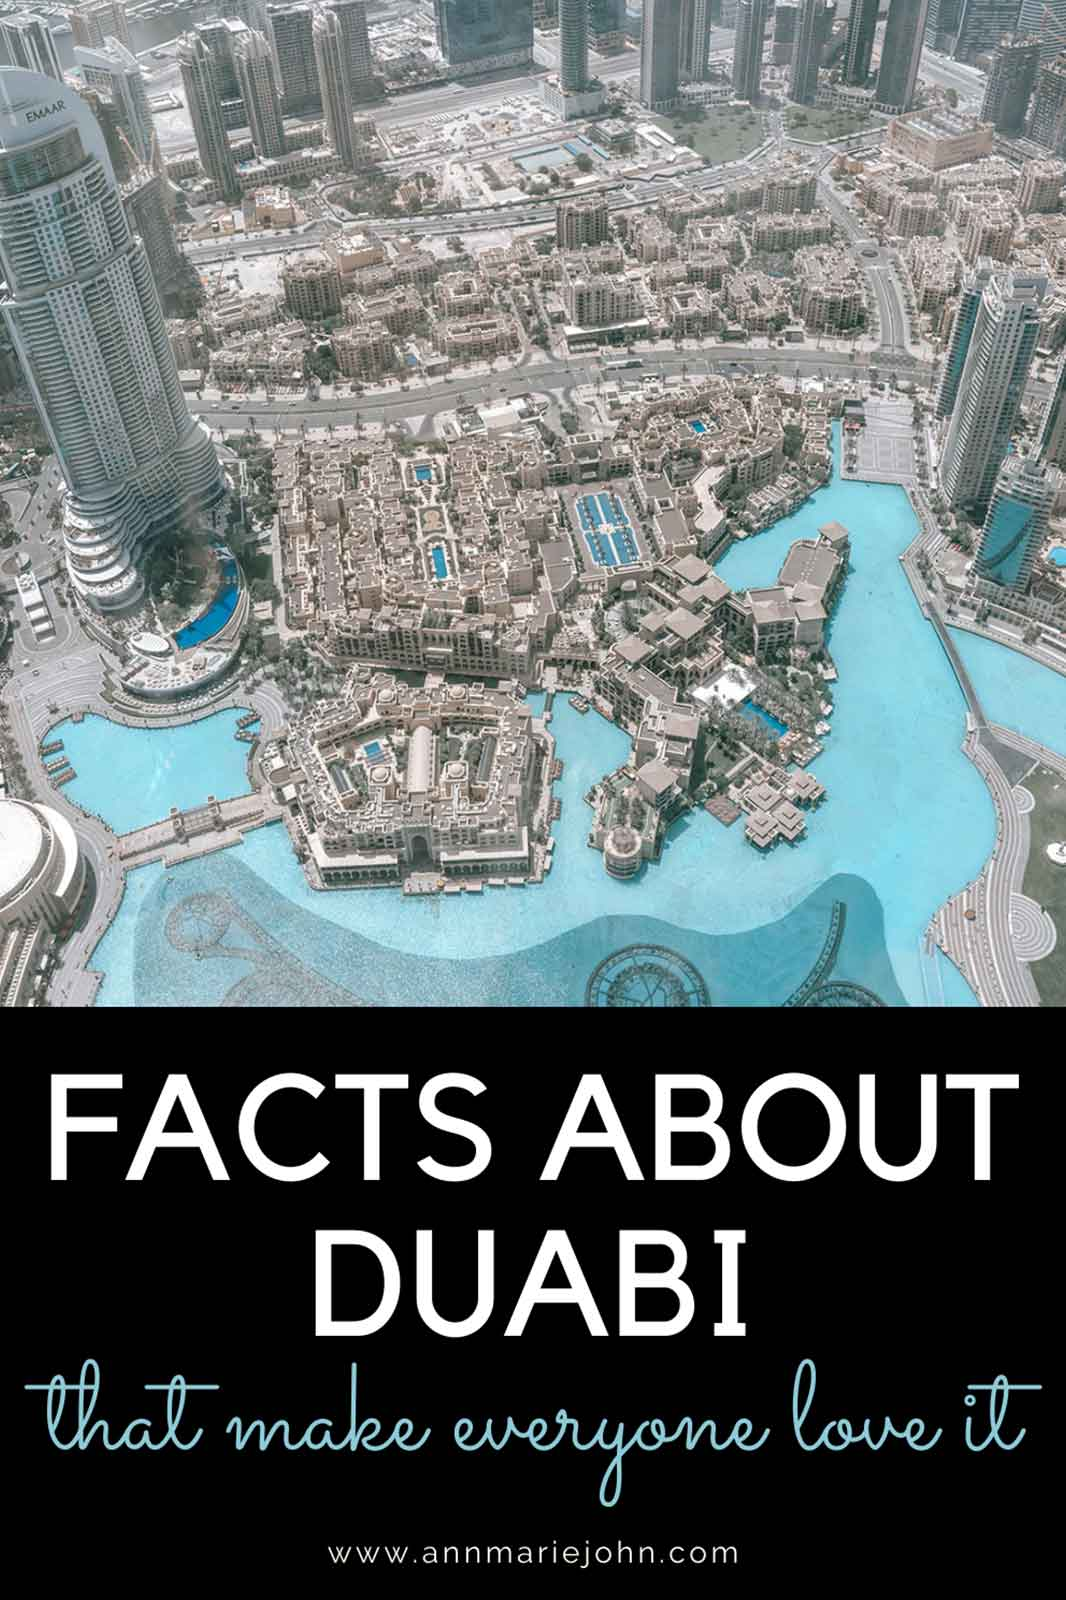 Facts about Dubai That Make Everyone Love It